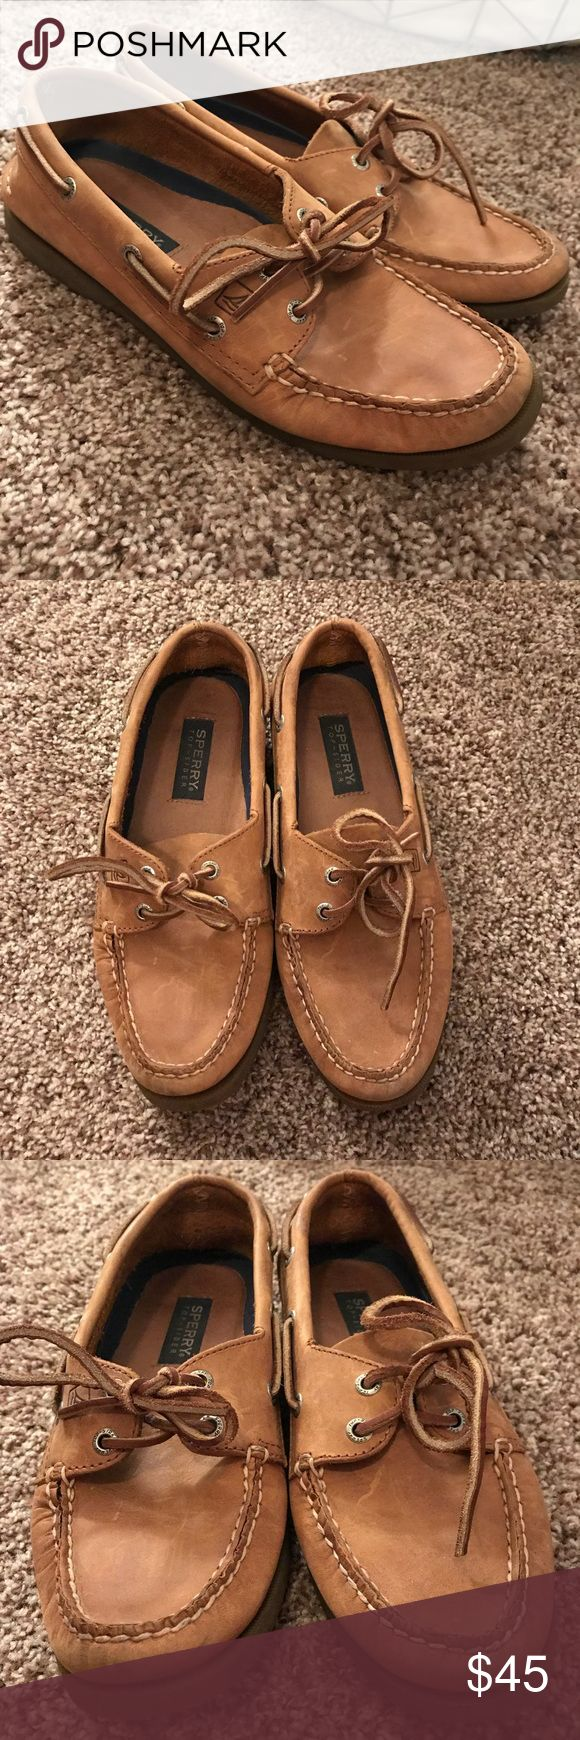 Sperry Topsider - Leather Boat Shoes - Women's 9 Real leather boat shoe, lightly worn, Women's 9 Sperry Top-Sider Shoes